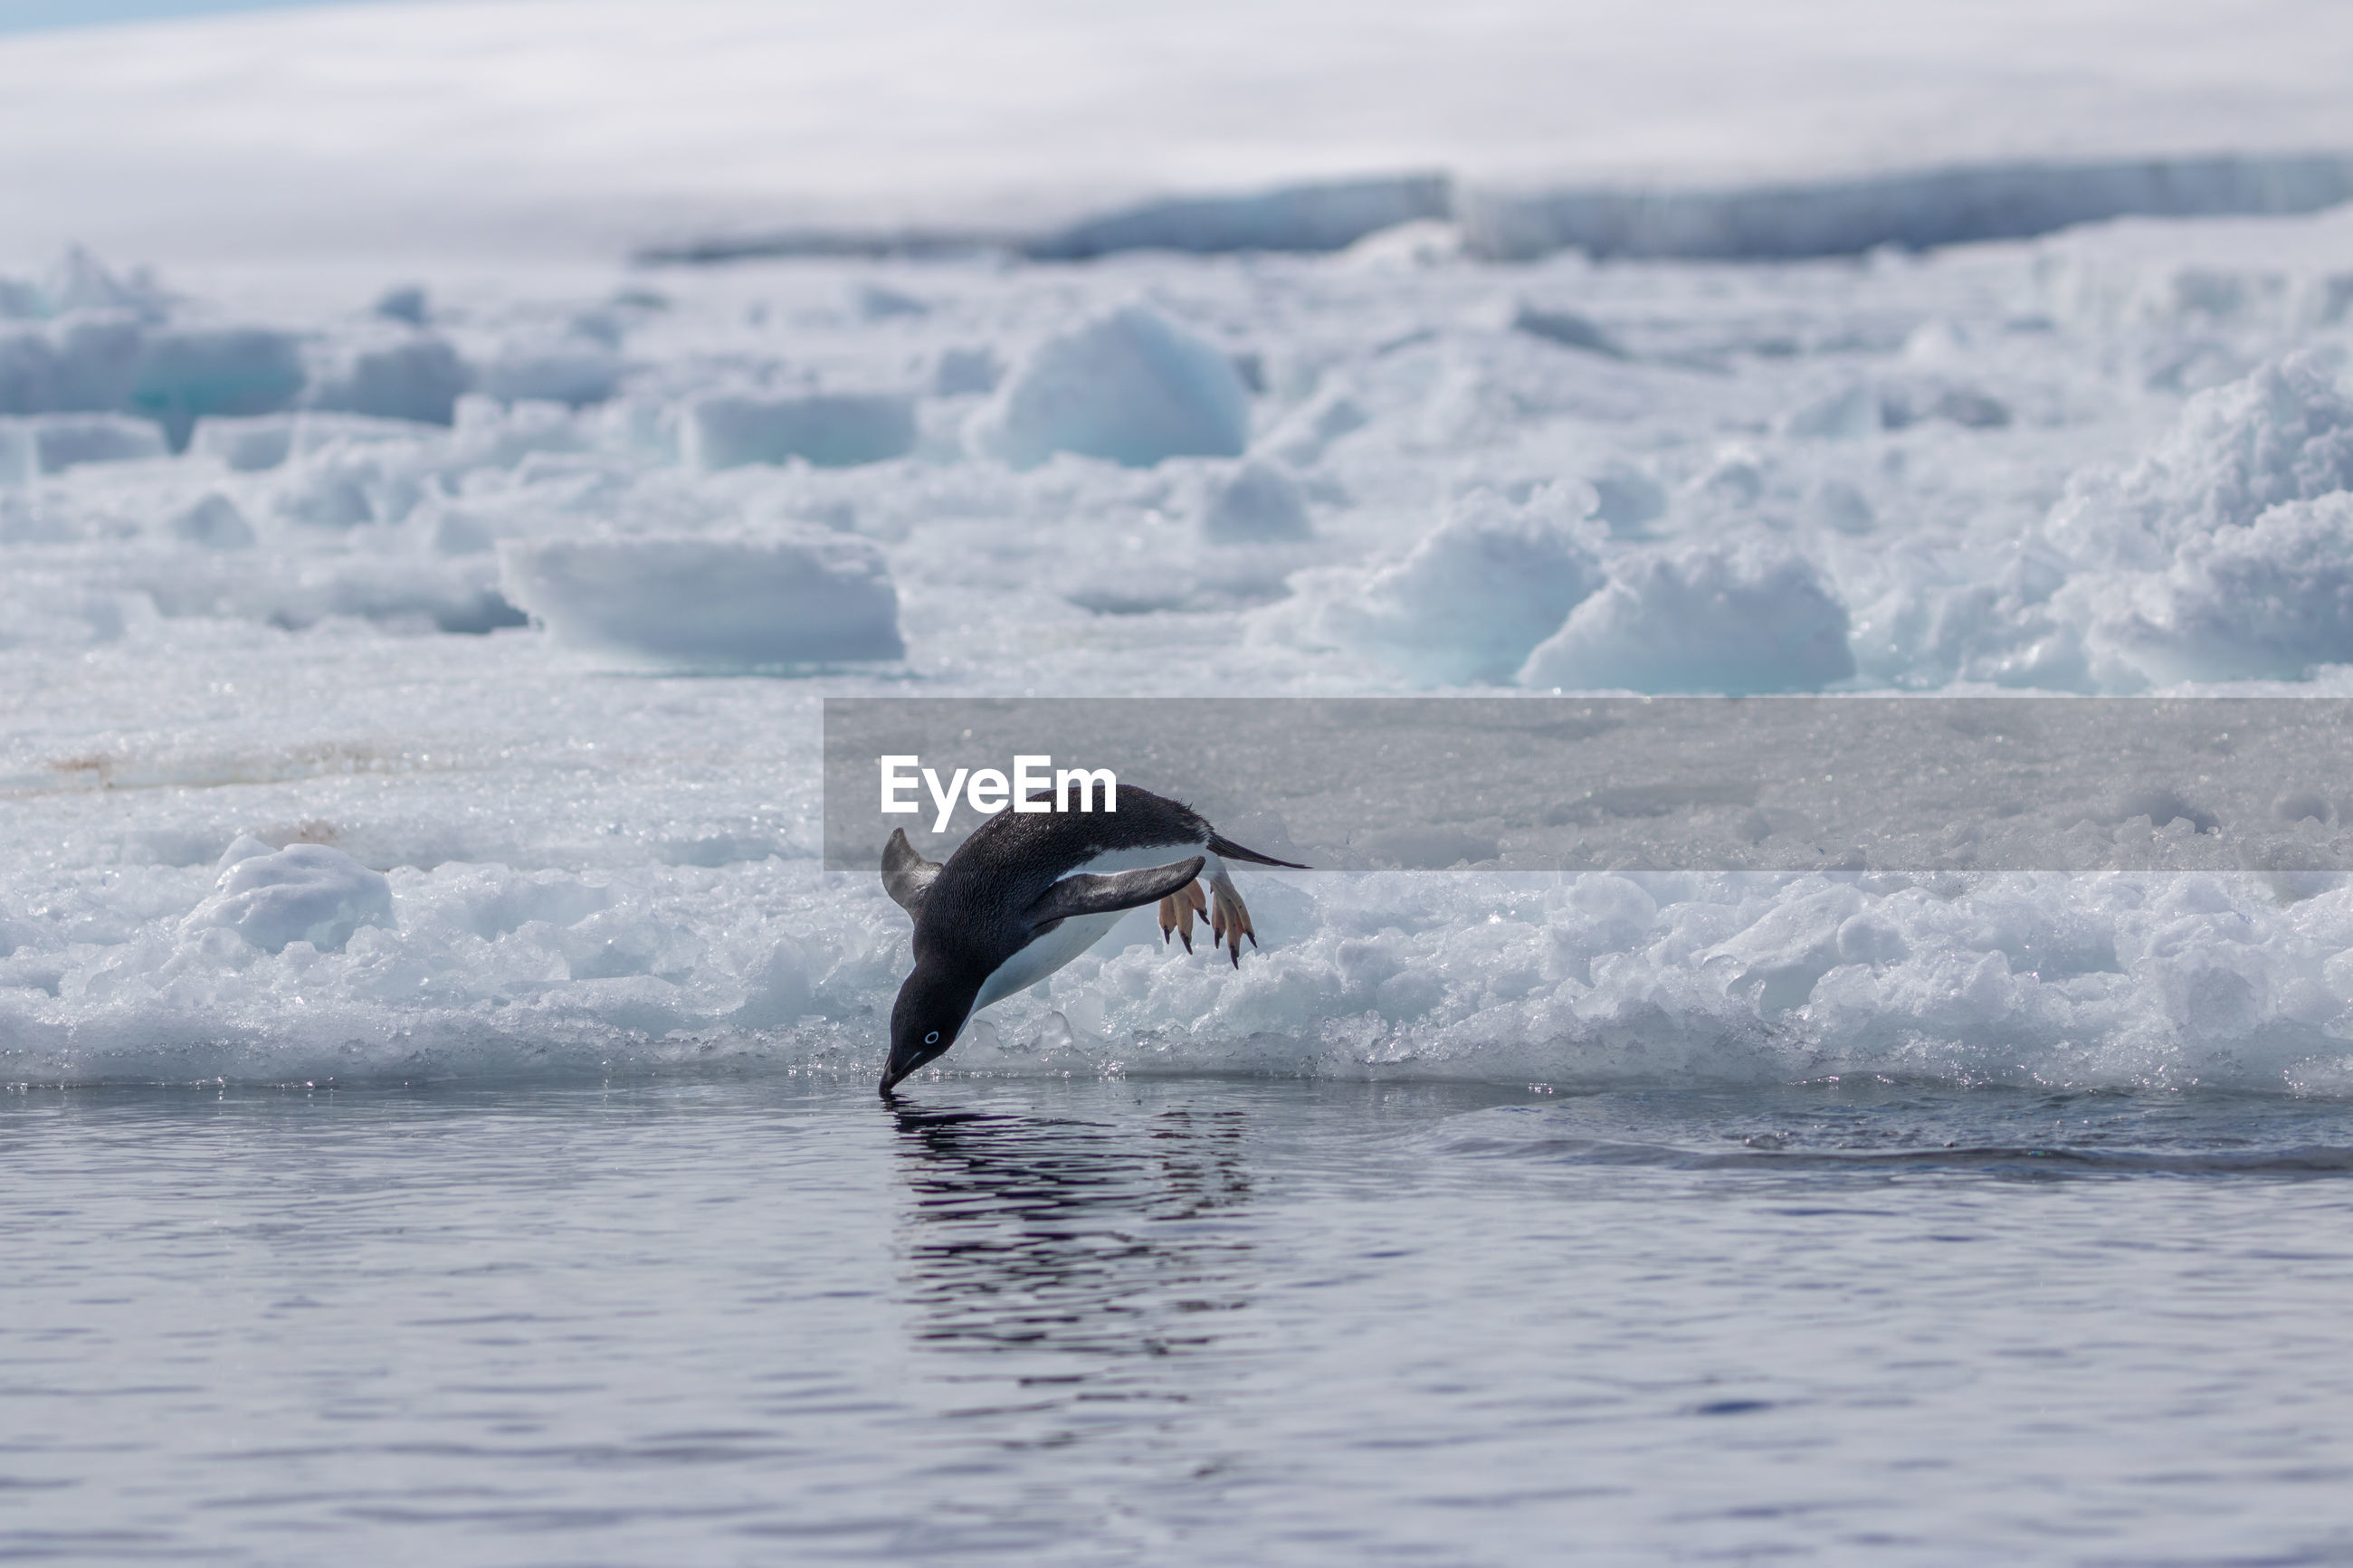 VIEW OF A BIRD SWIMMING IN SEA